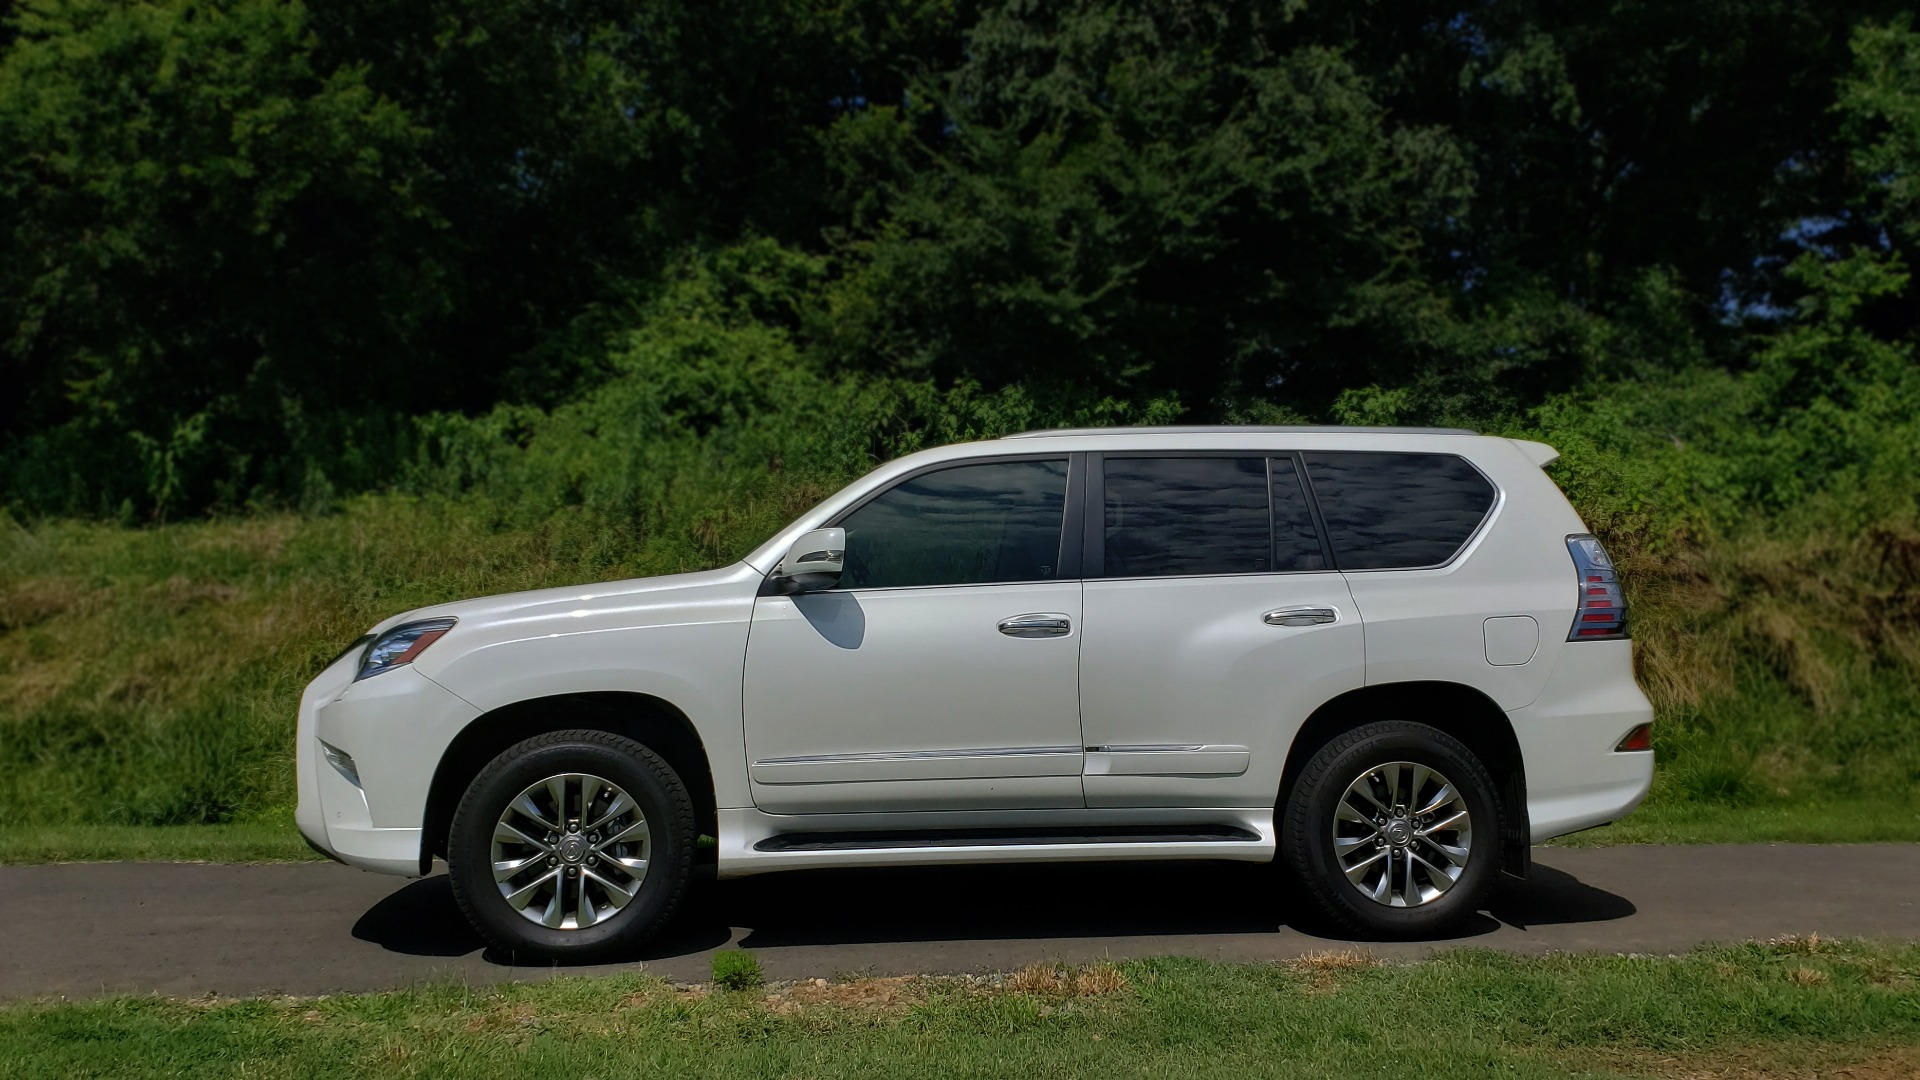 Used 2019 Lexus GX 460 LUXURY 4WD / DRVR SPRT PKG / MARK LEV SND / DYN CRUISE for sale Sold at Formula Imports in Charlotte NC 28227 2